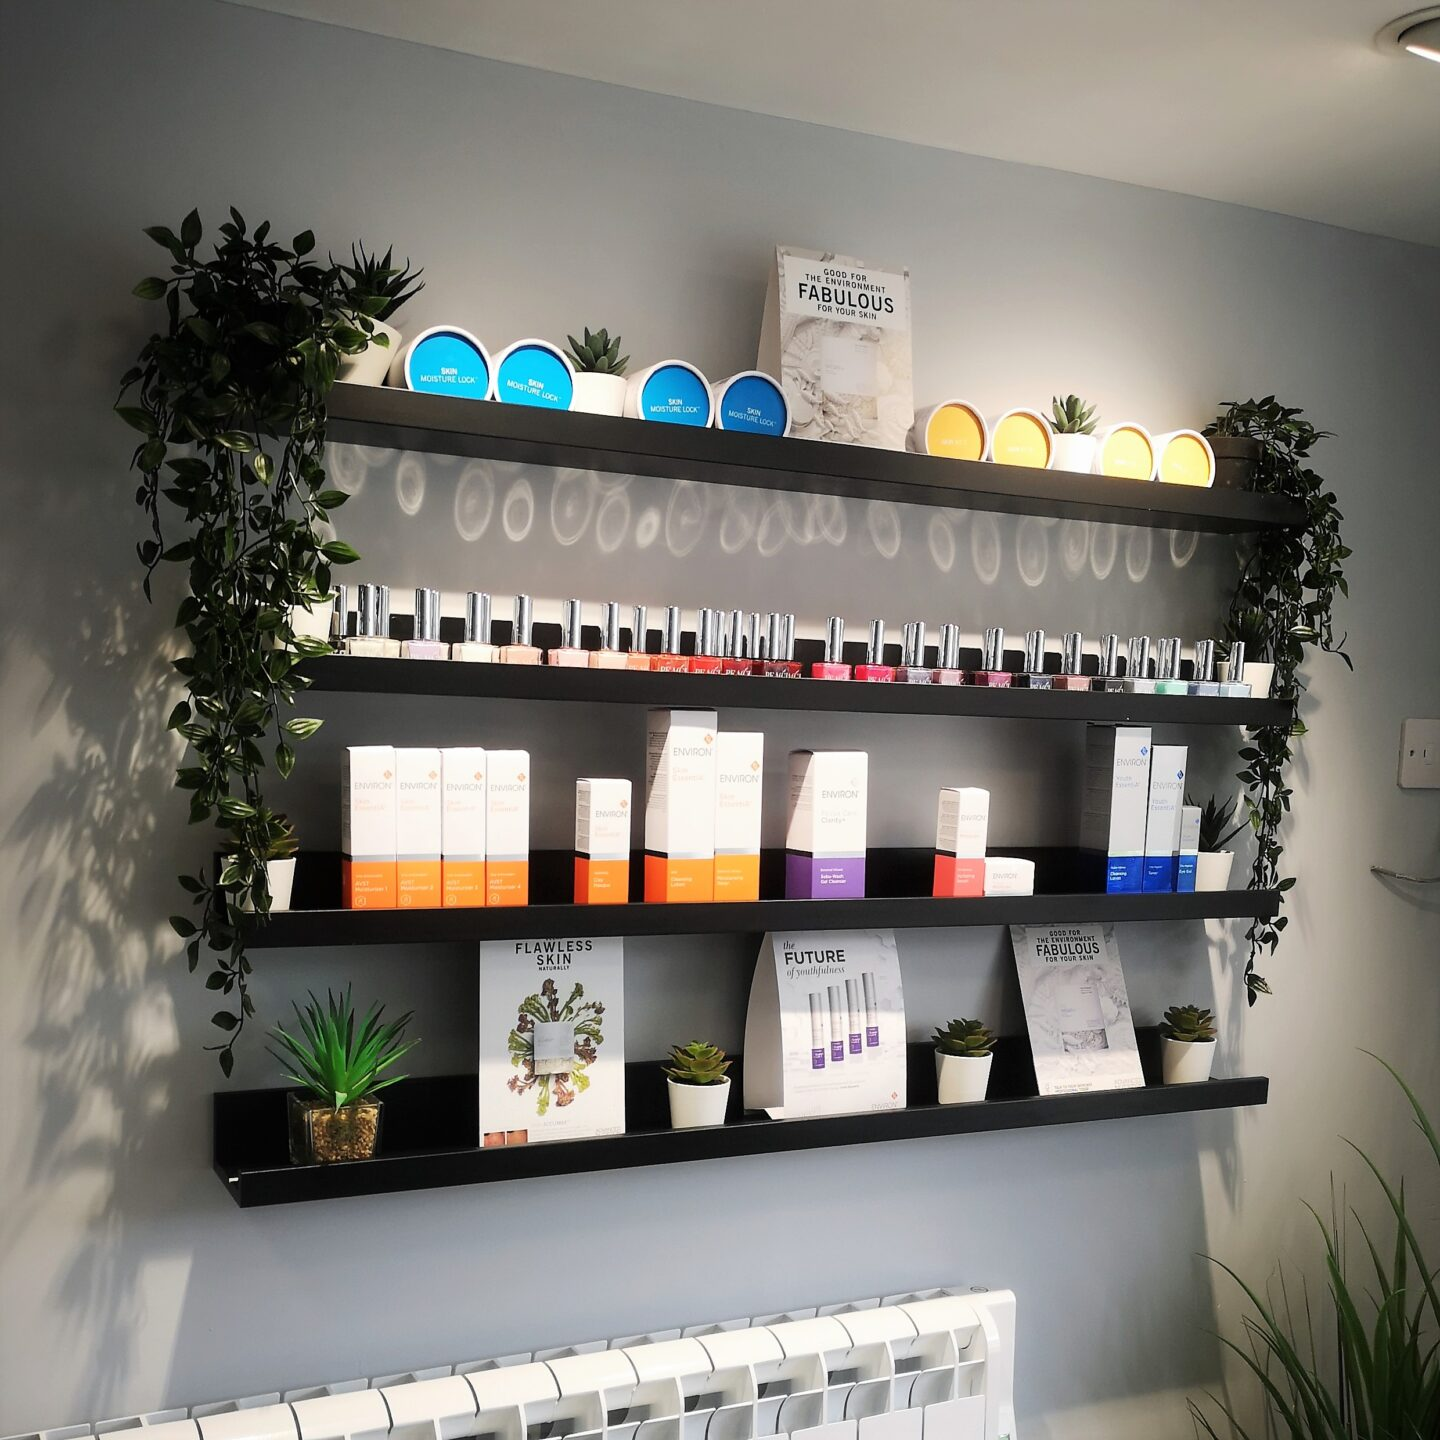 Skin & Beauty Clinic, Tenterden, Skin Clinic, Facial, Skin Health, Beauty Review, CACI Signature Non-Surgical Facial Toning, CACI Facial Treatment, Local Places, Kent Businesses, Skin Lift, Skin & Beauty Clinic Review, Facials Review, the Frenchie Mummy